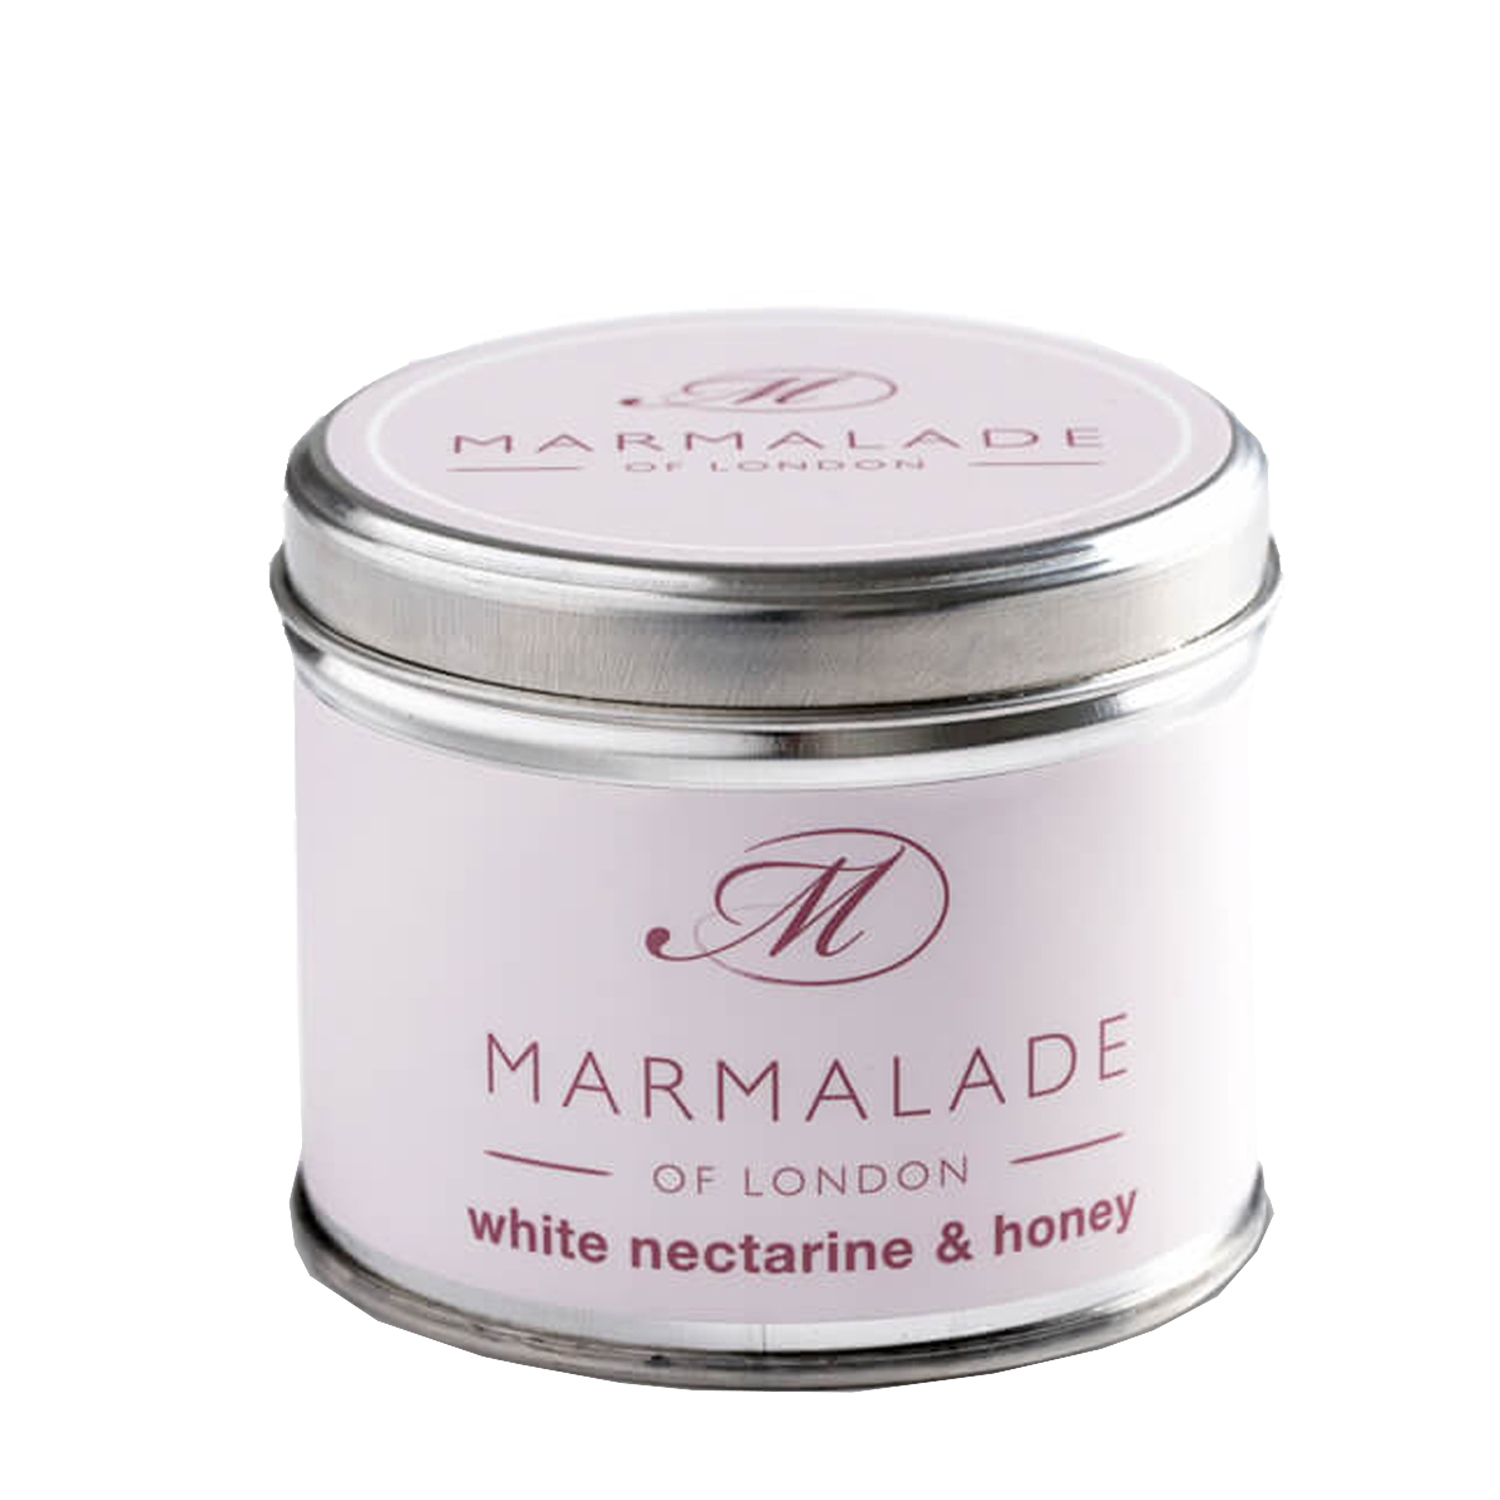 00173 White Nectarine & Honey tin candle